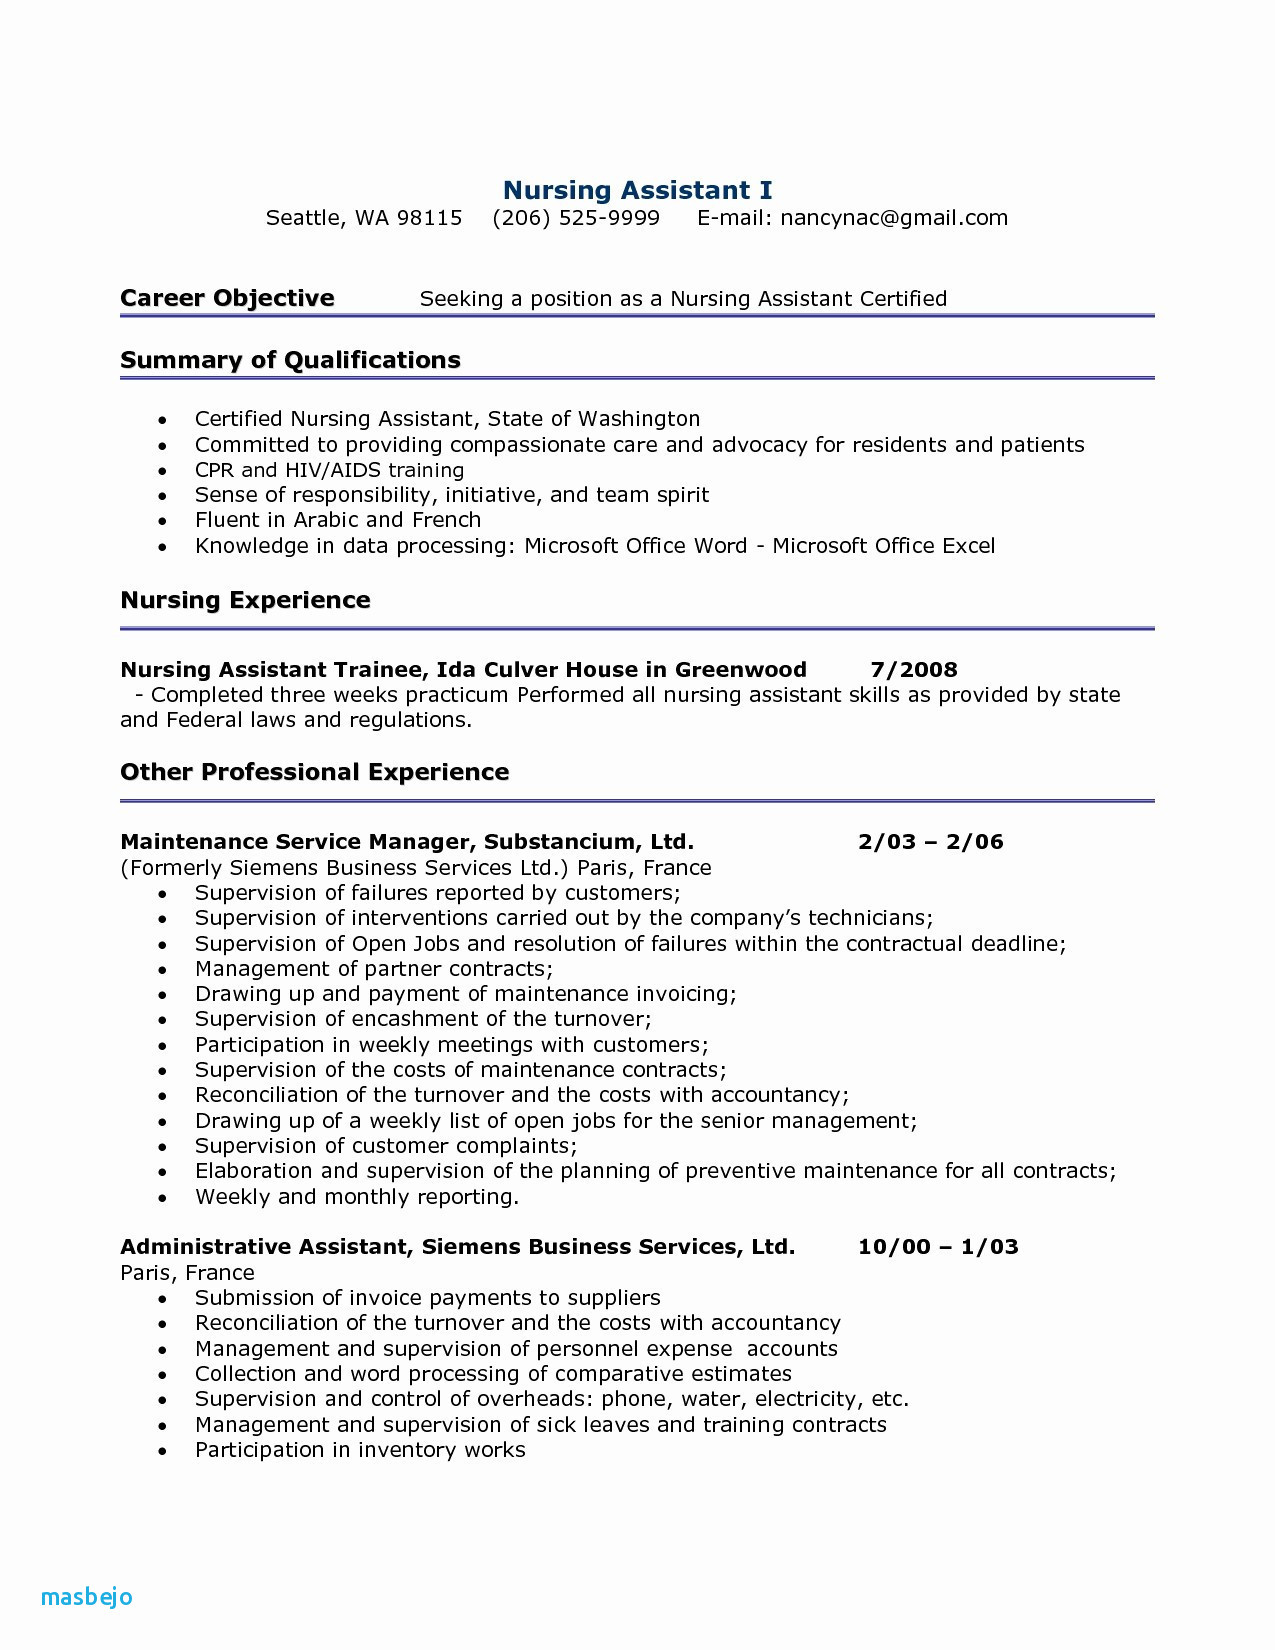 Professional Business Resume - An Example Resume Resume